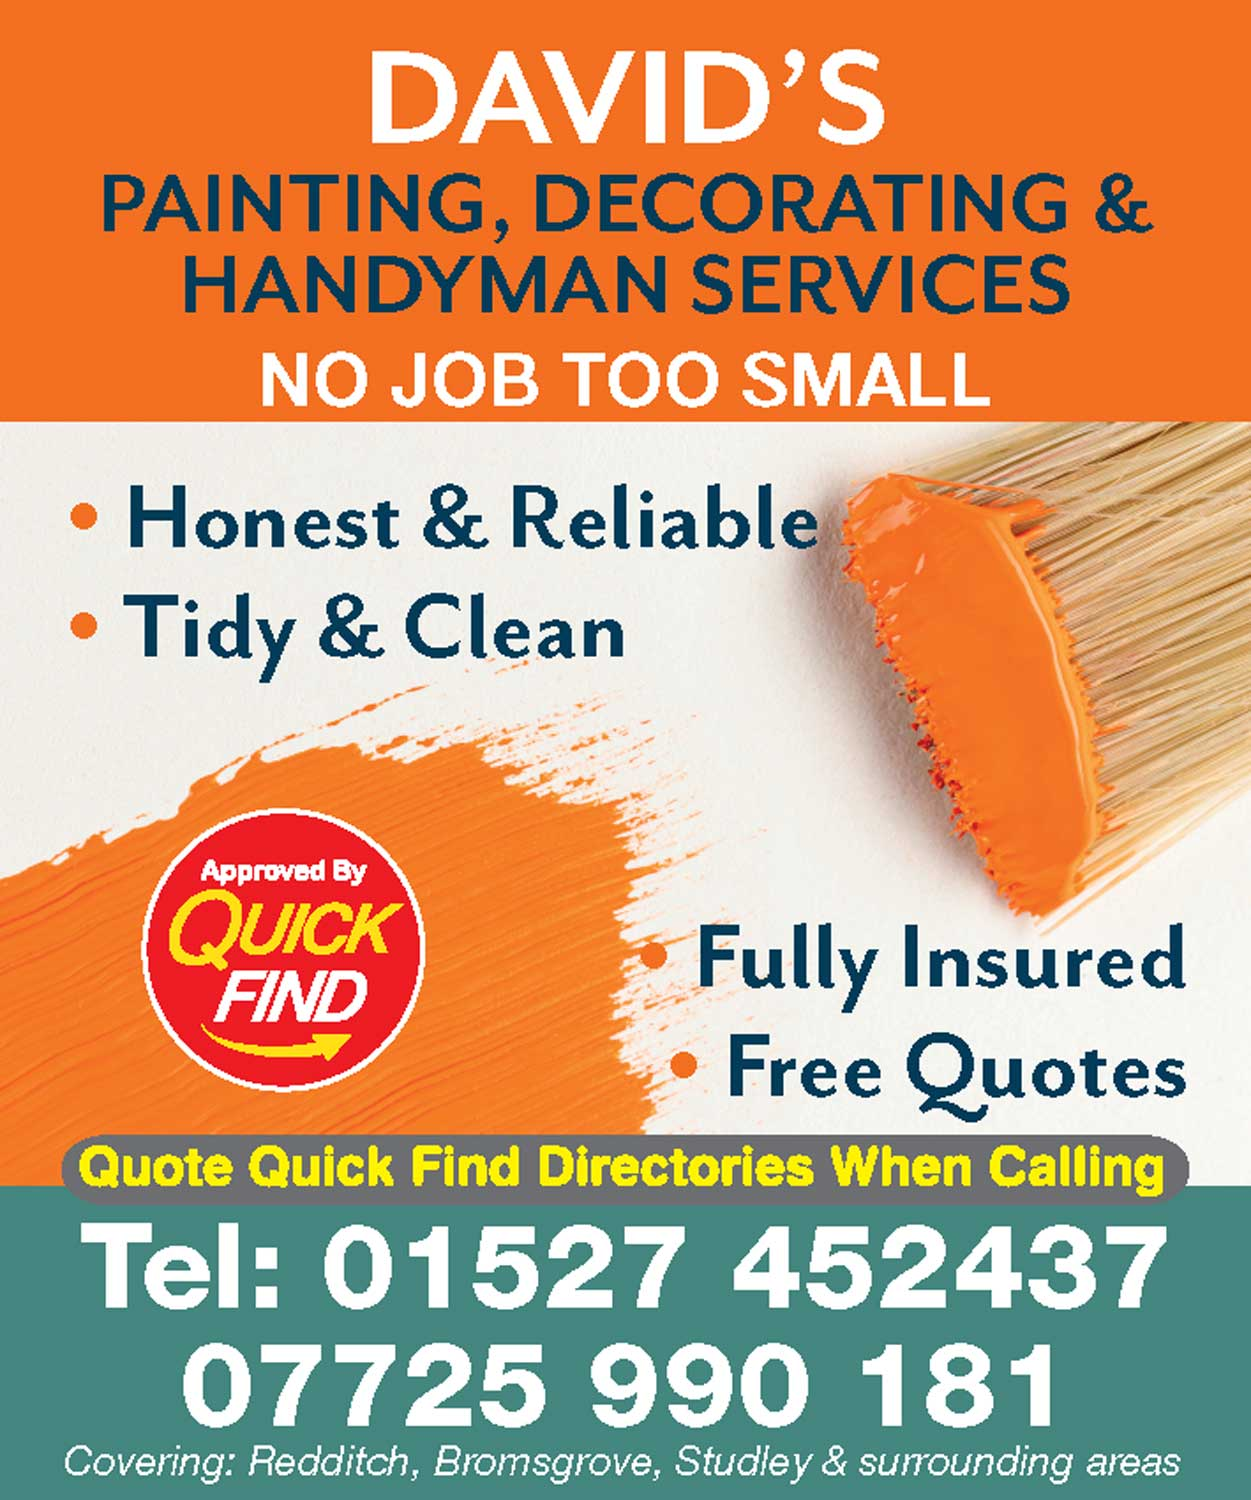 David's Painting, Decorating & Handyman Services